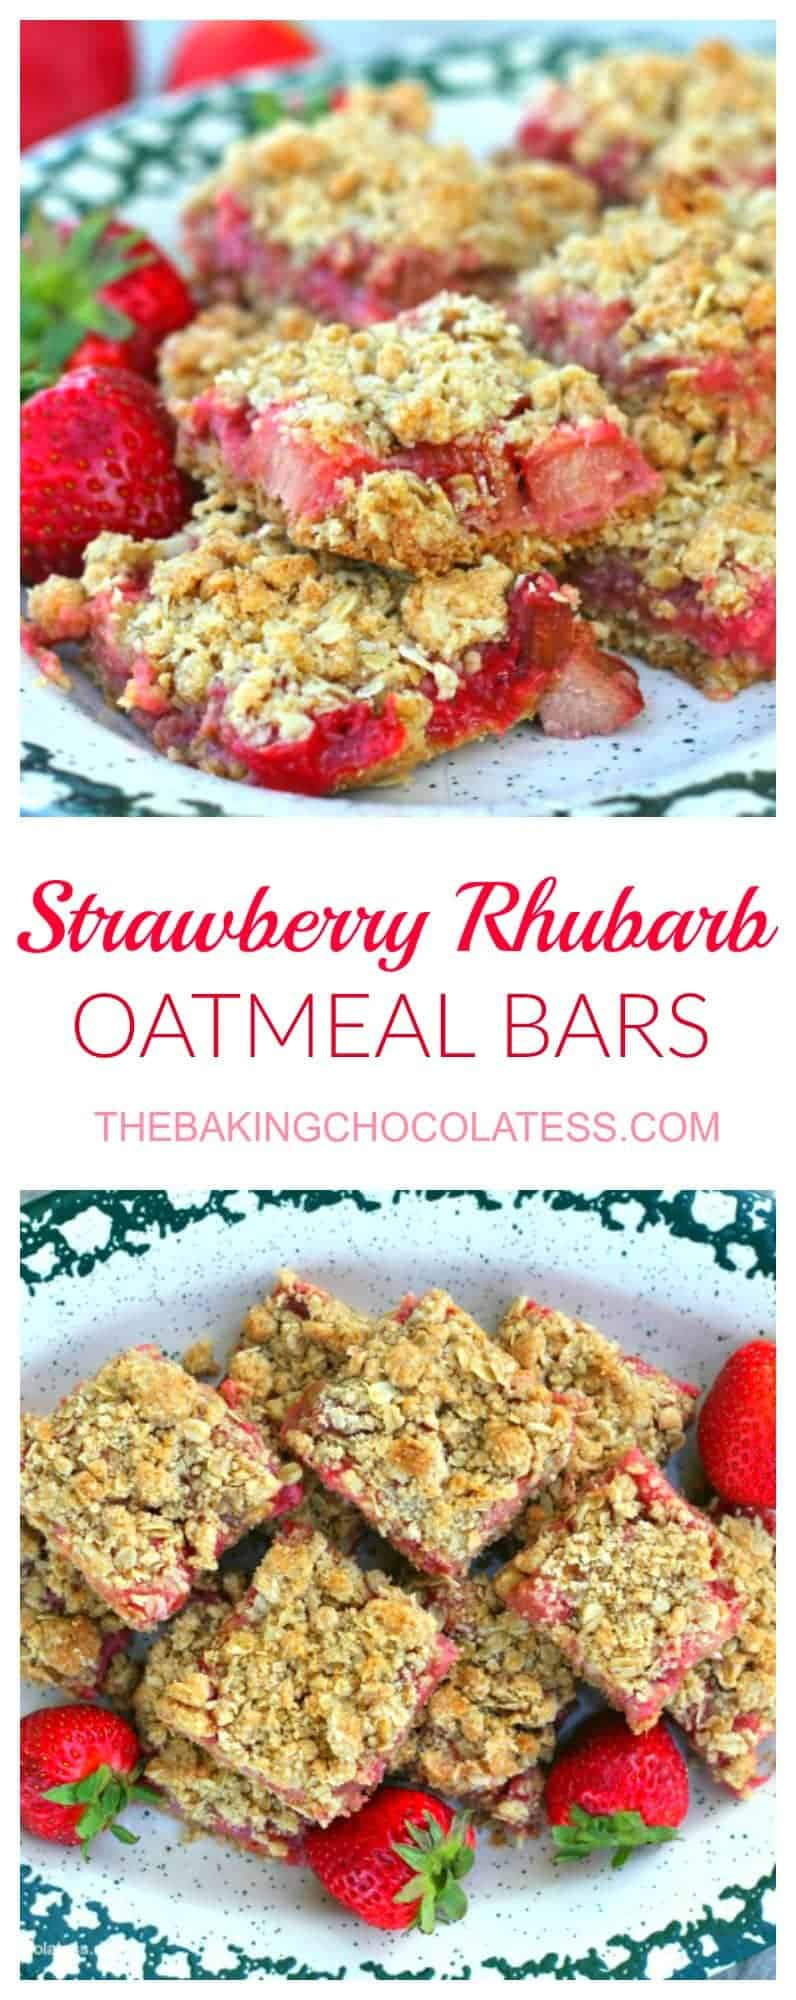 Awesome Strawberry Rhubarb Oatmeal Bars -  These scrumptious Awesome Strawberry Rhubarb Oatmeal Bars won a Pennsylvania State Fair Butter Cookie Contest and it\'s no wonder with the mouth-watering sweet and tart flavors of strawberry and rhubarb pie flavor baked in a yummy oatmeal crust. Promising you won\'t stop at one. #strawberry #rhubarb #strawberryrhubarb #oatmeal bars #dessert